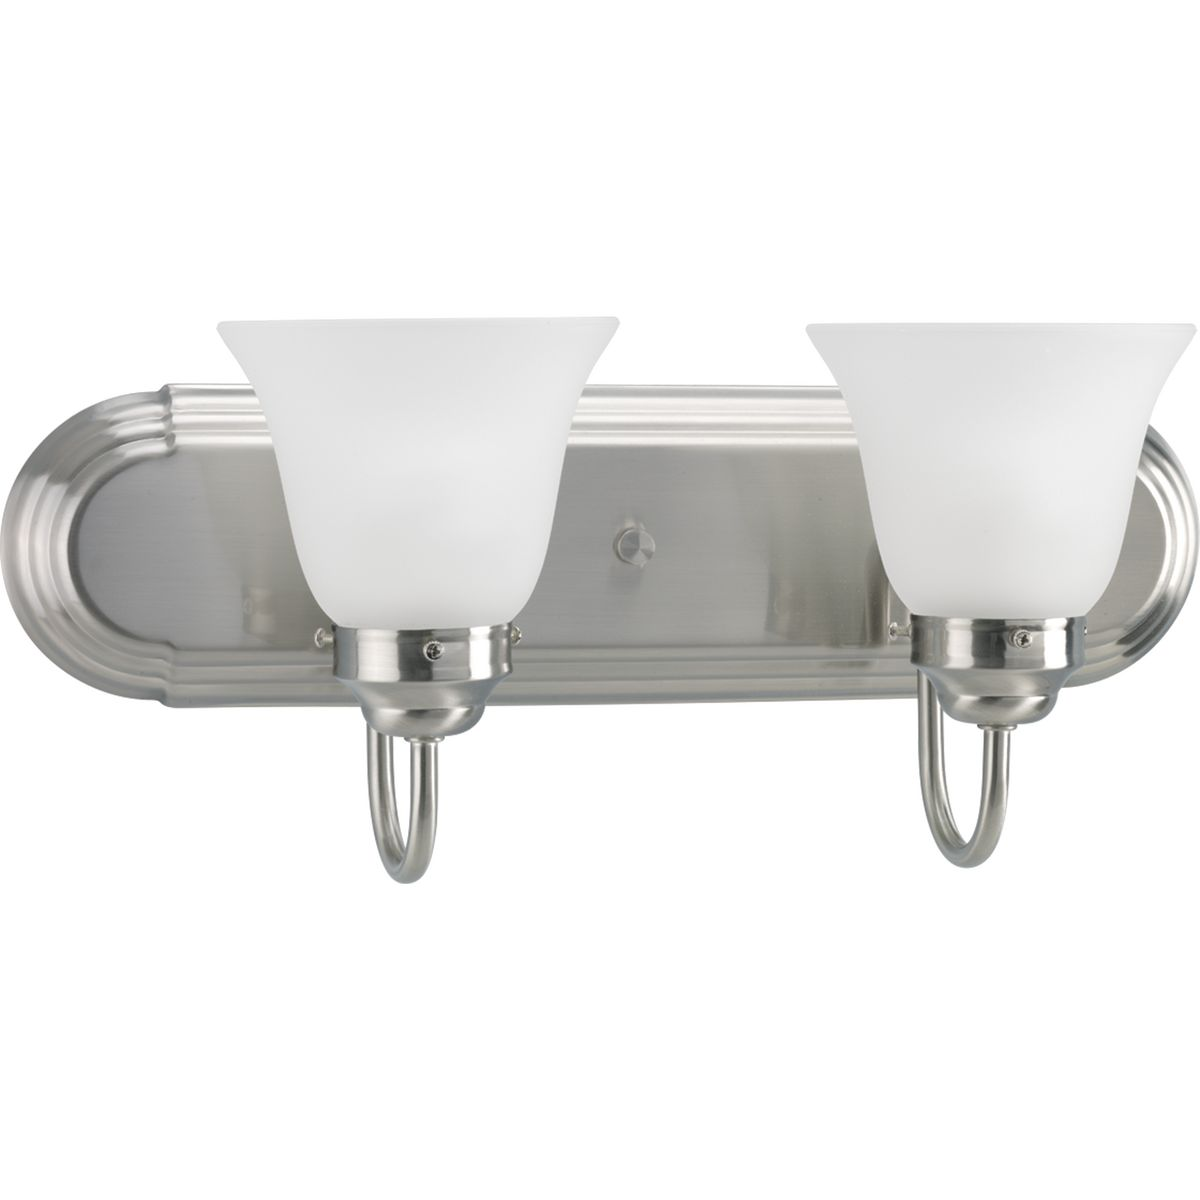 Two-Light Bath Bracket | Brand | Homestyle Lighting